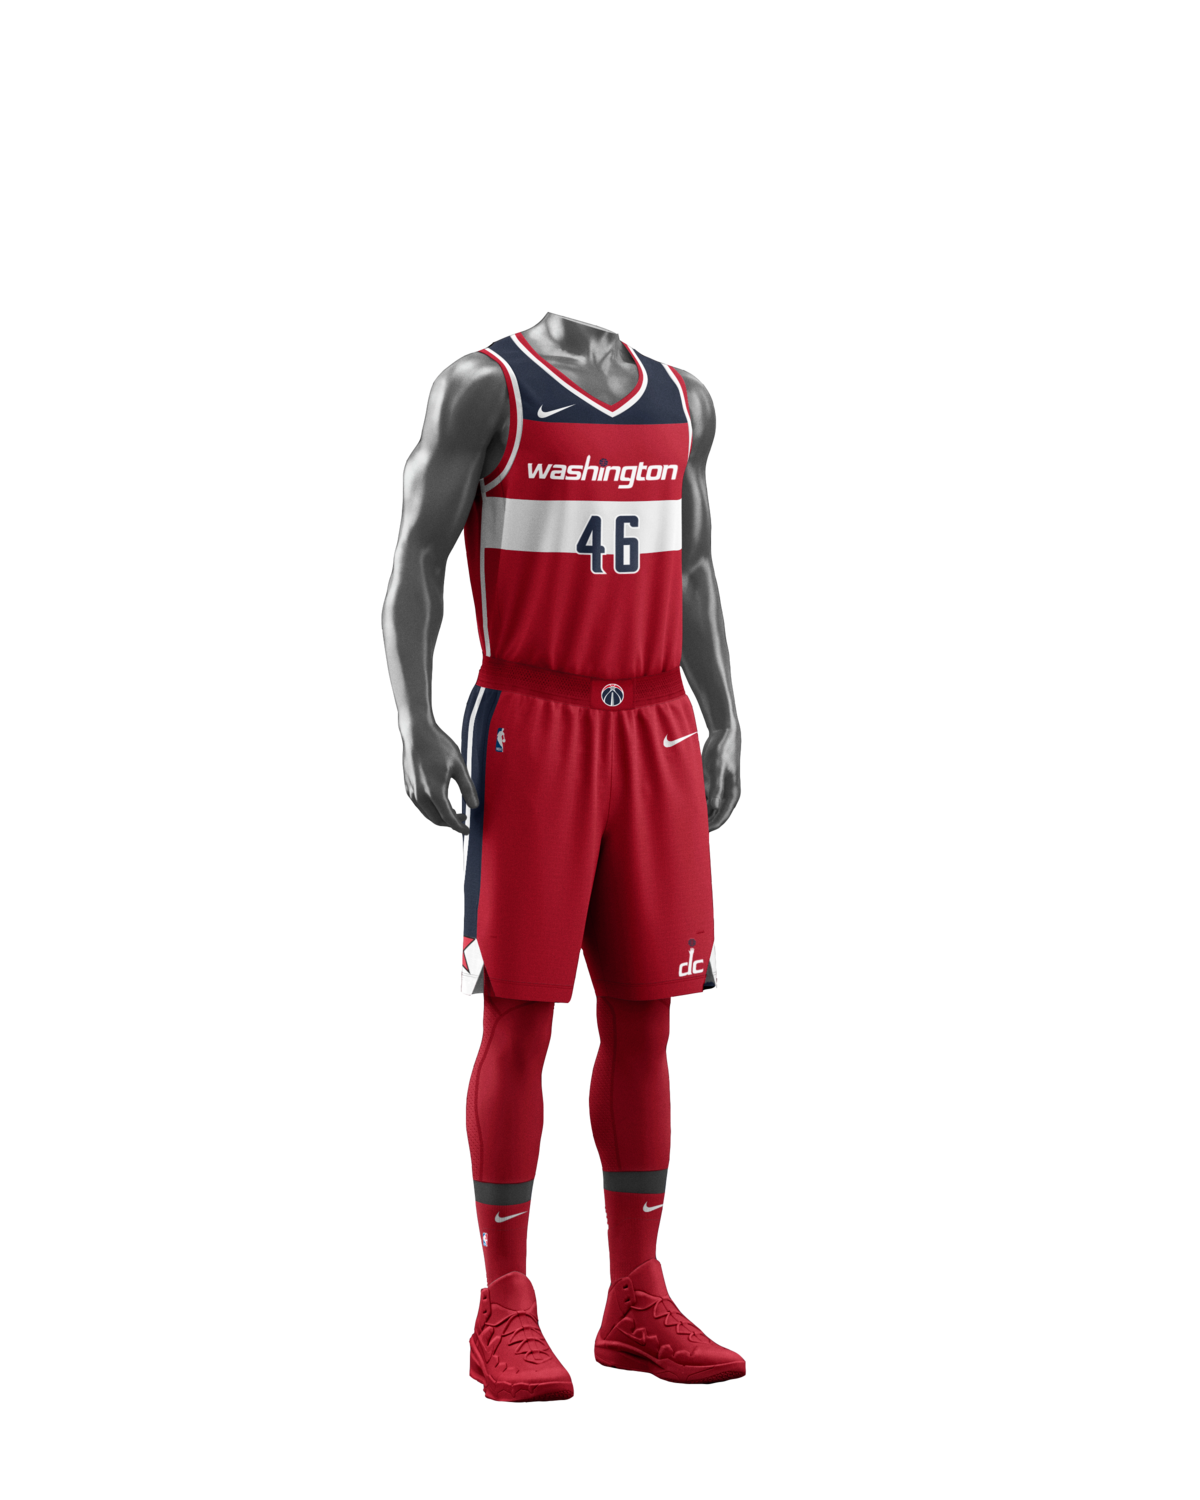 nike-uniforms-red-1-half.png